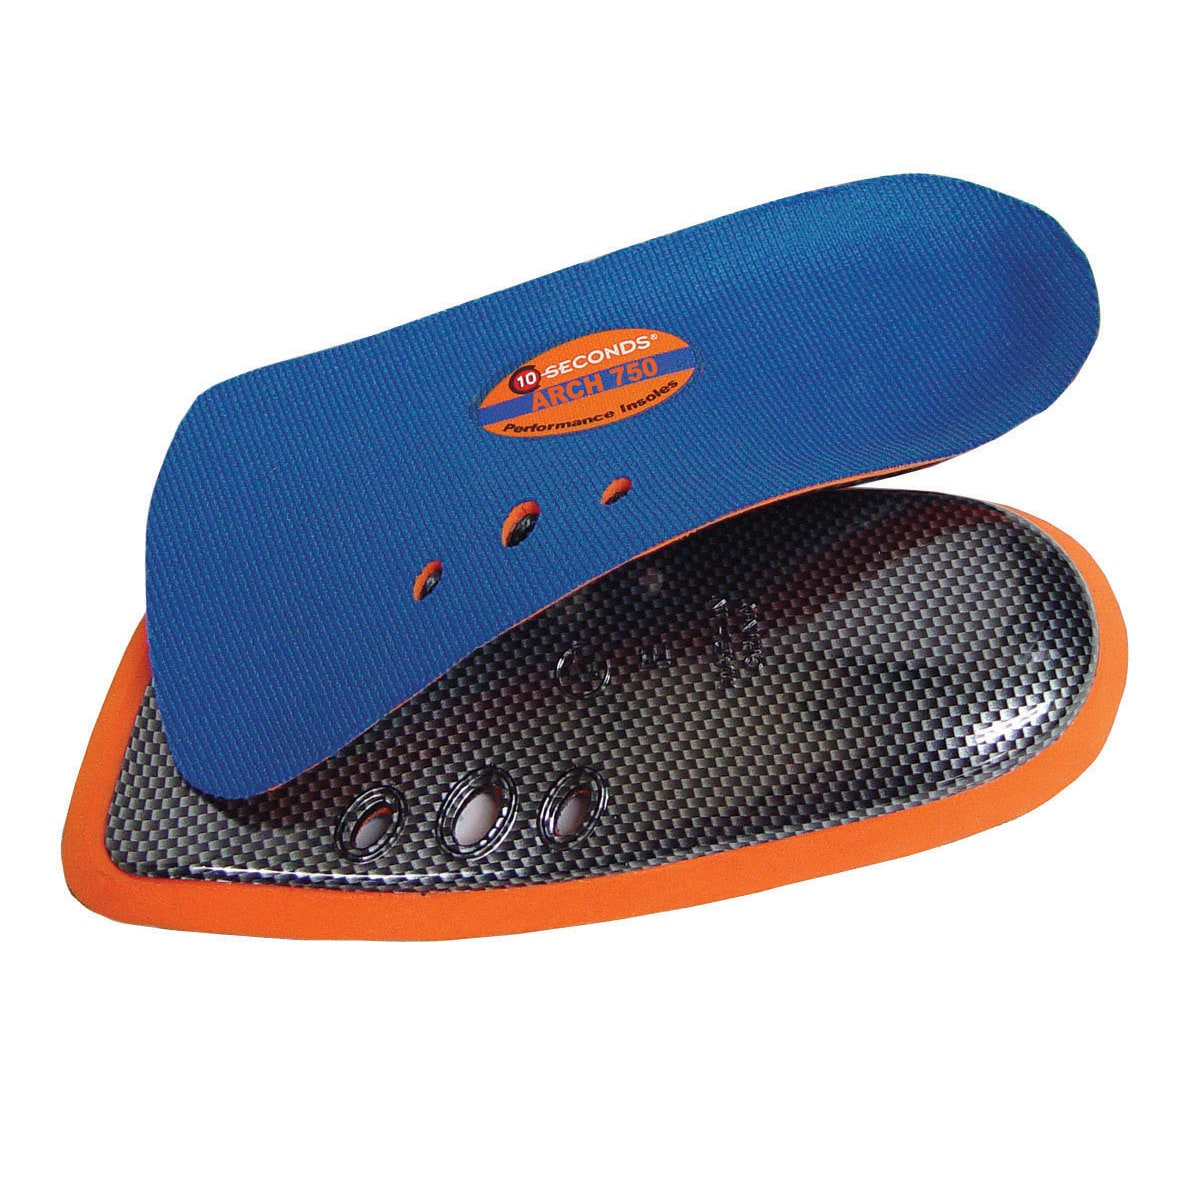 10 Seconds Arch 750 3//4 Performance Insoles Stability Shoe Inserts//Orthotics